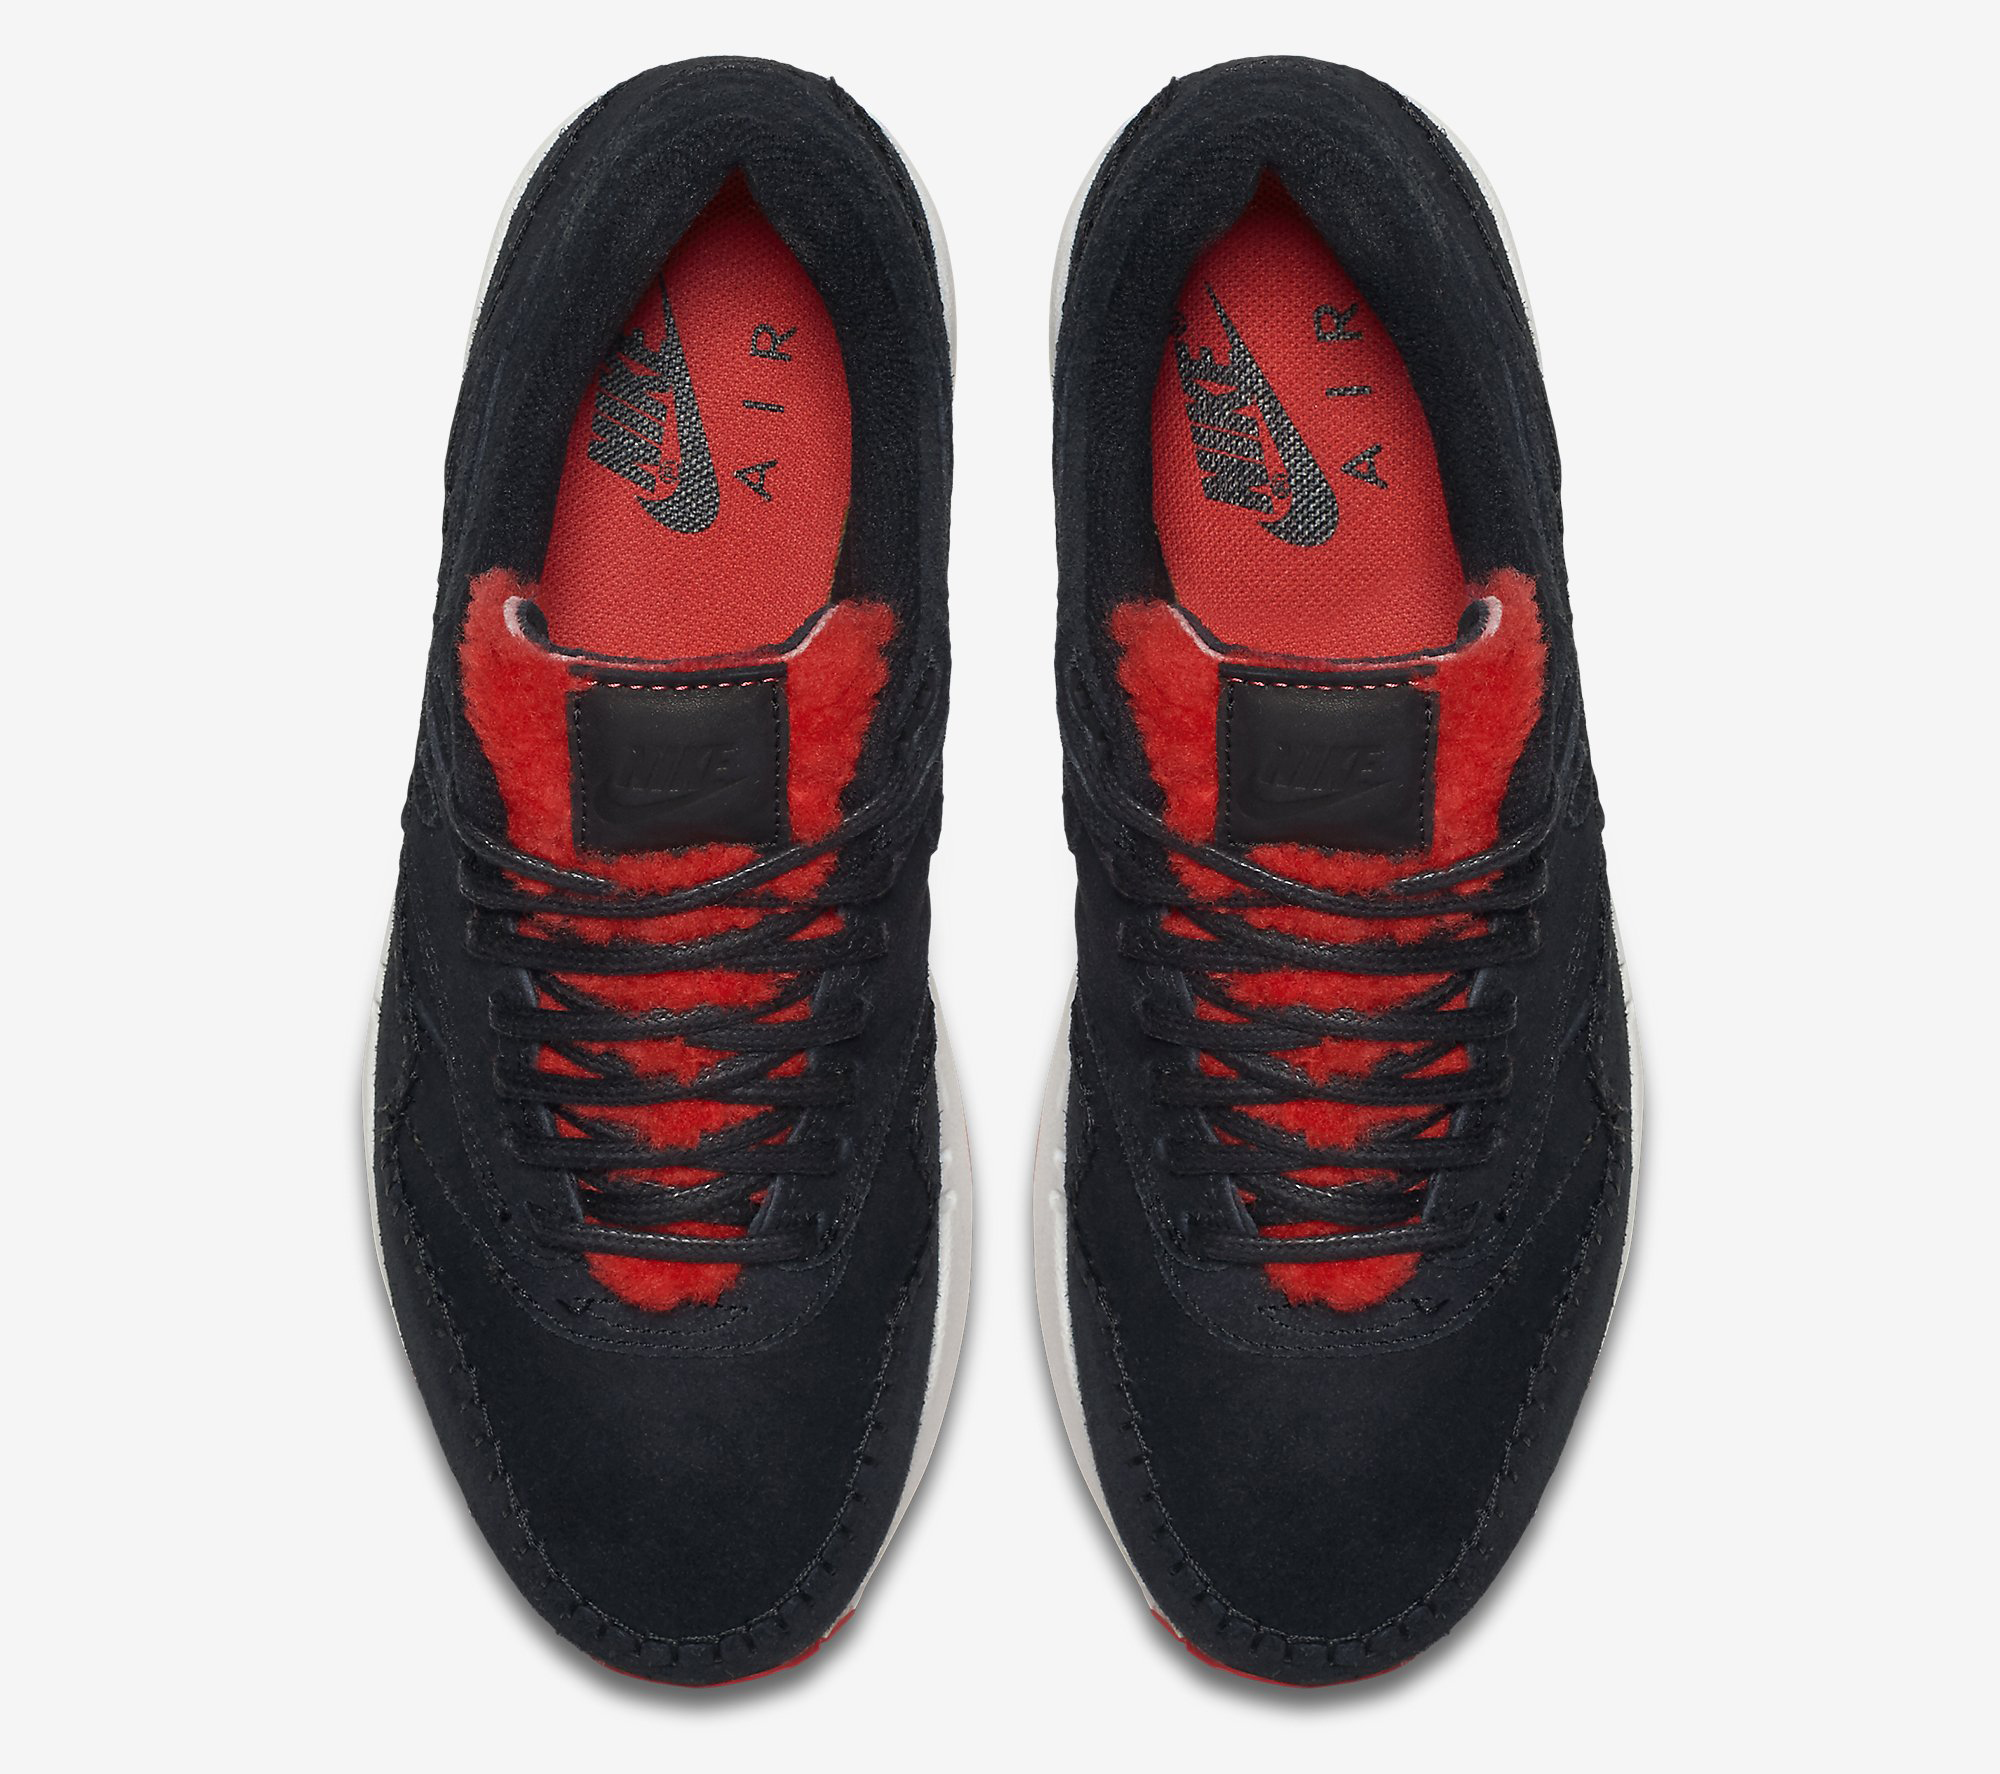 Nike Air Max 1 Sherpa Black Red 454746-010 Top